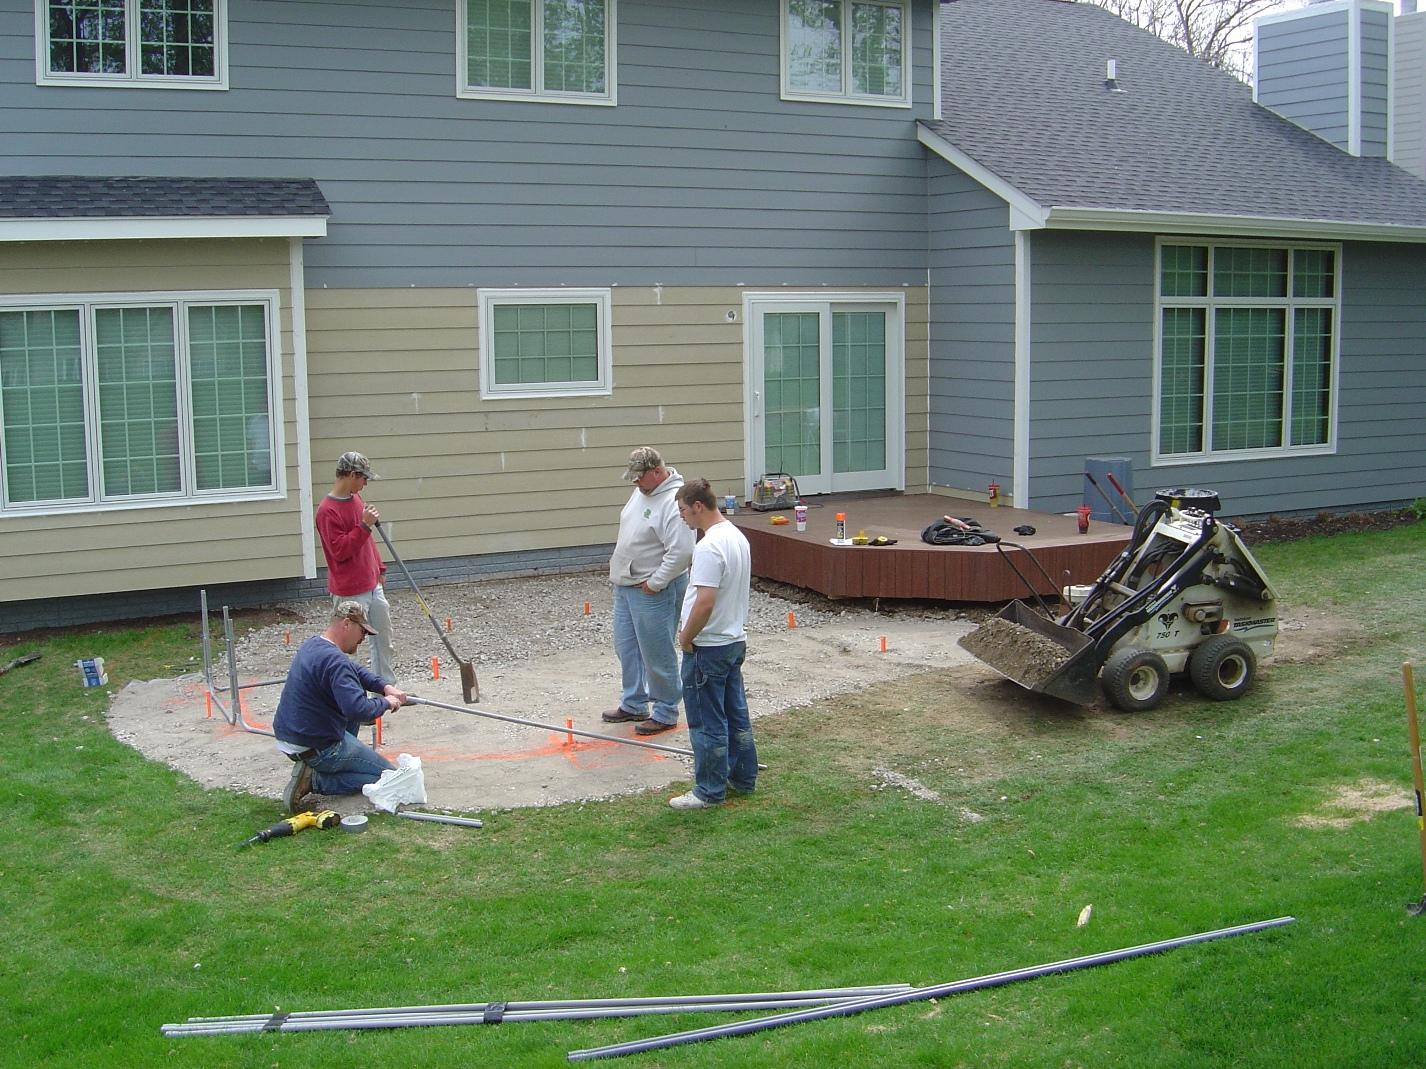 Archadeck employees working on a patio project